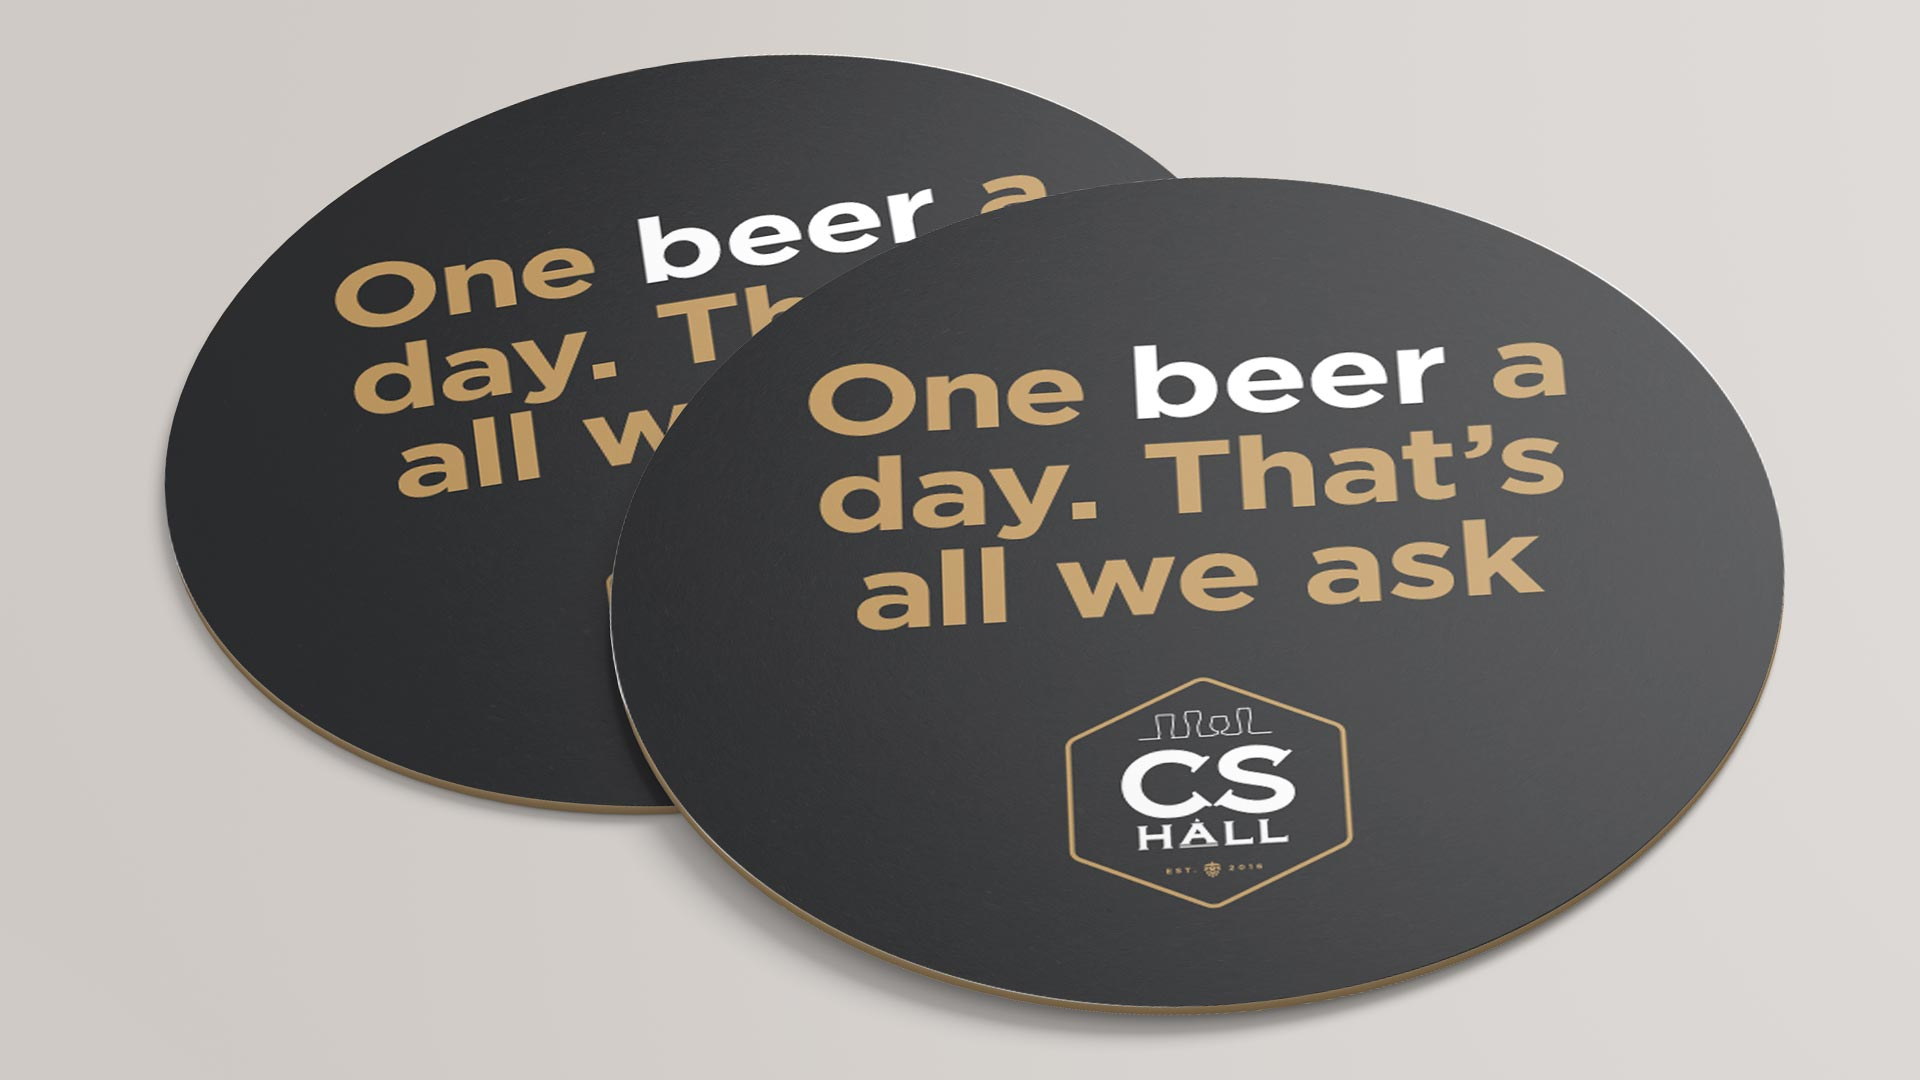 Cathedral Social Hall, Design, Cathedral Social Hall Coasters, Portfolio Image, Cathedral Social Hall Coaster - One beer a day. That's all we ask.